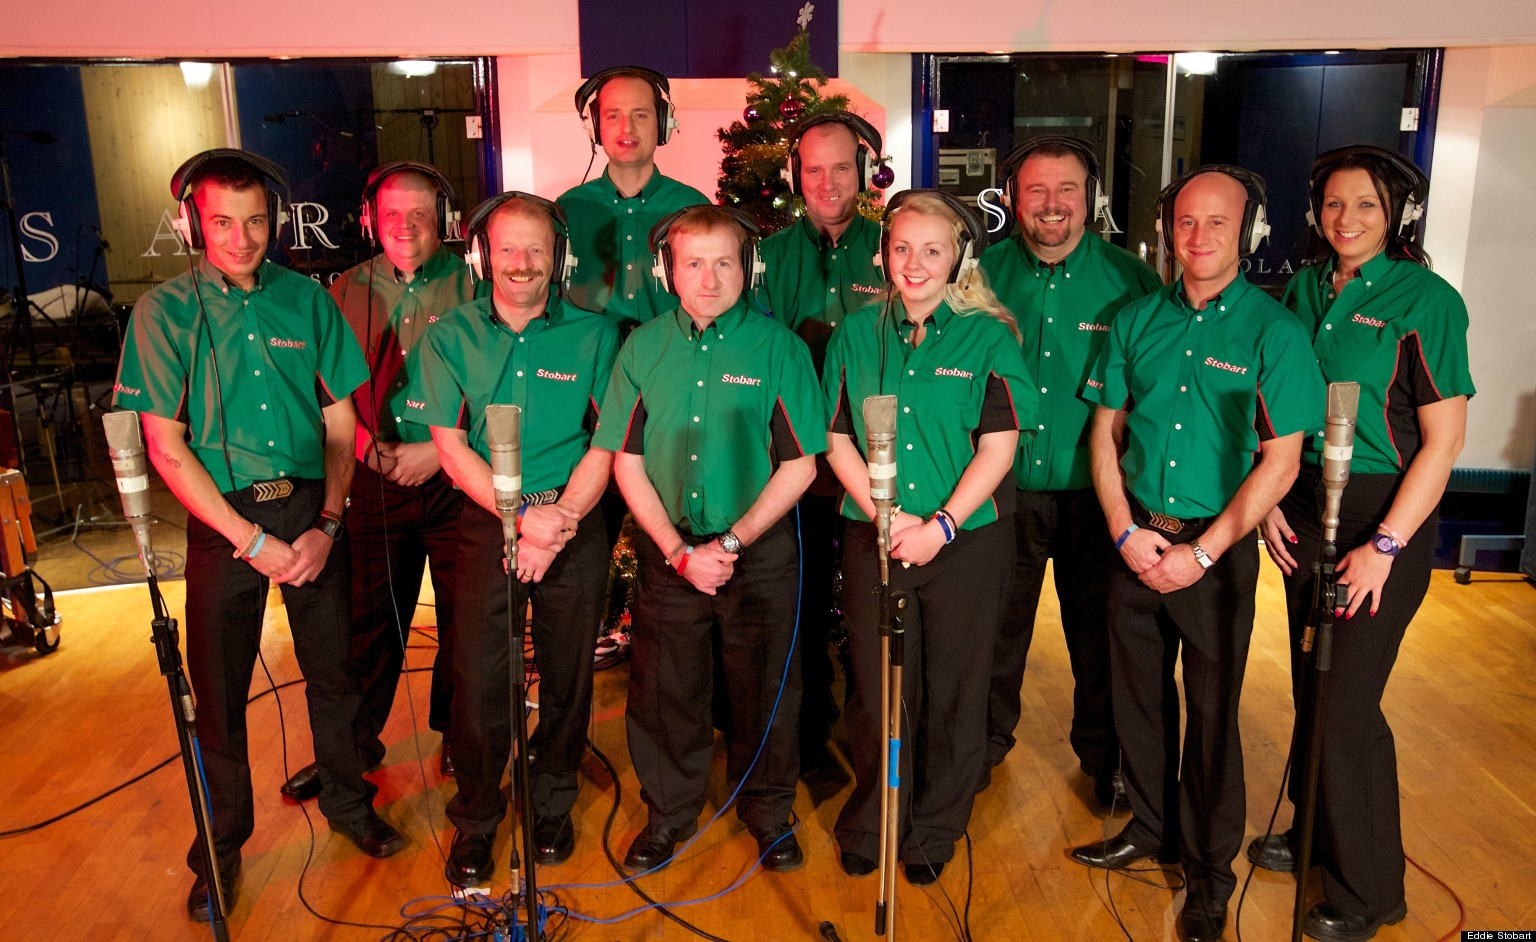 Eddie Stobart Releases Christmas Single The 12 Days Of